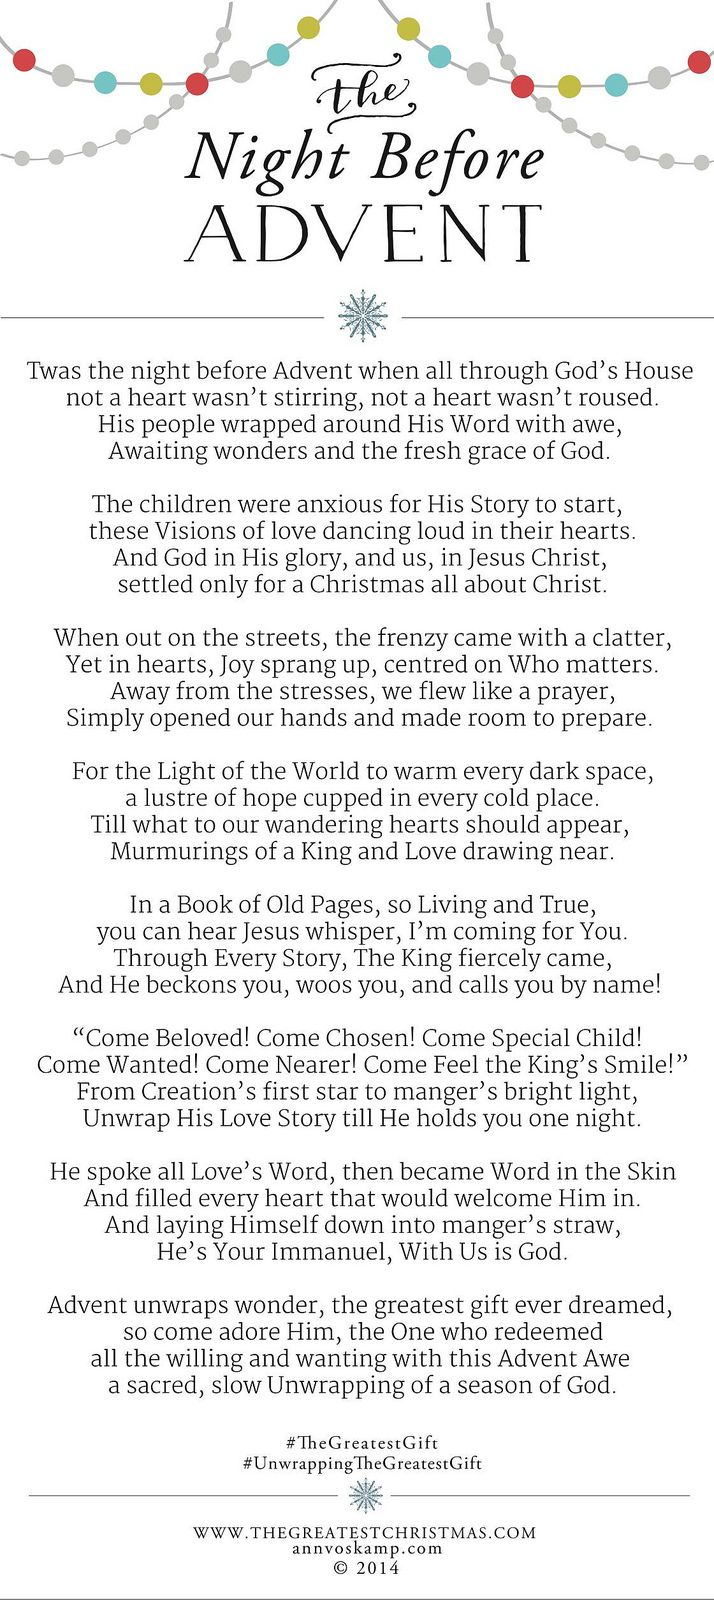 Christmas poems for church programs - What You Need To Get Through The Darkest Days Of The Year Light Your Way From Advent To Christmas